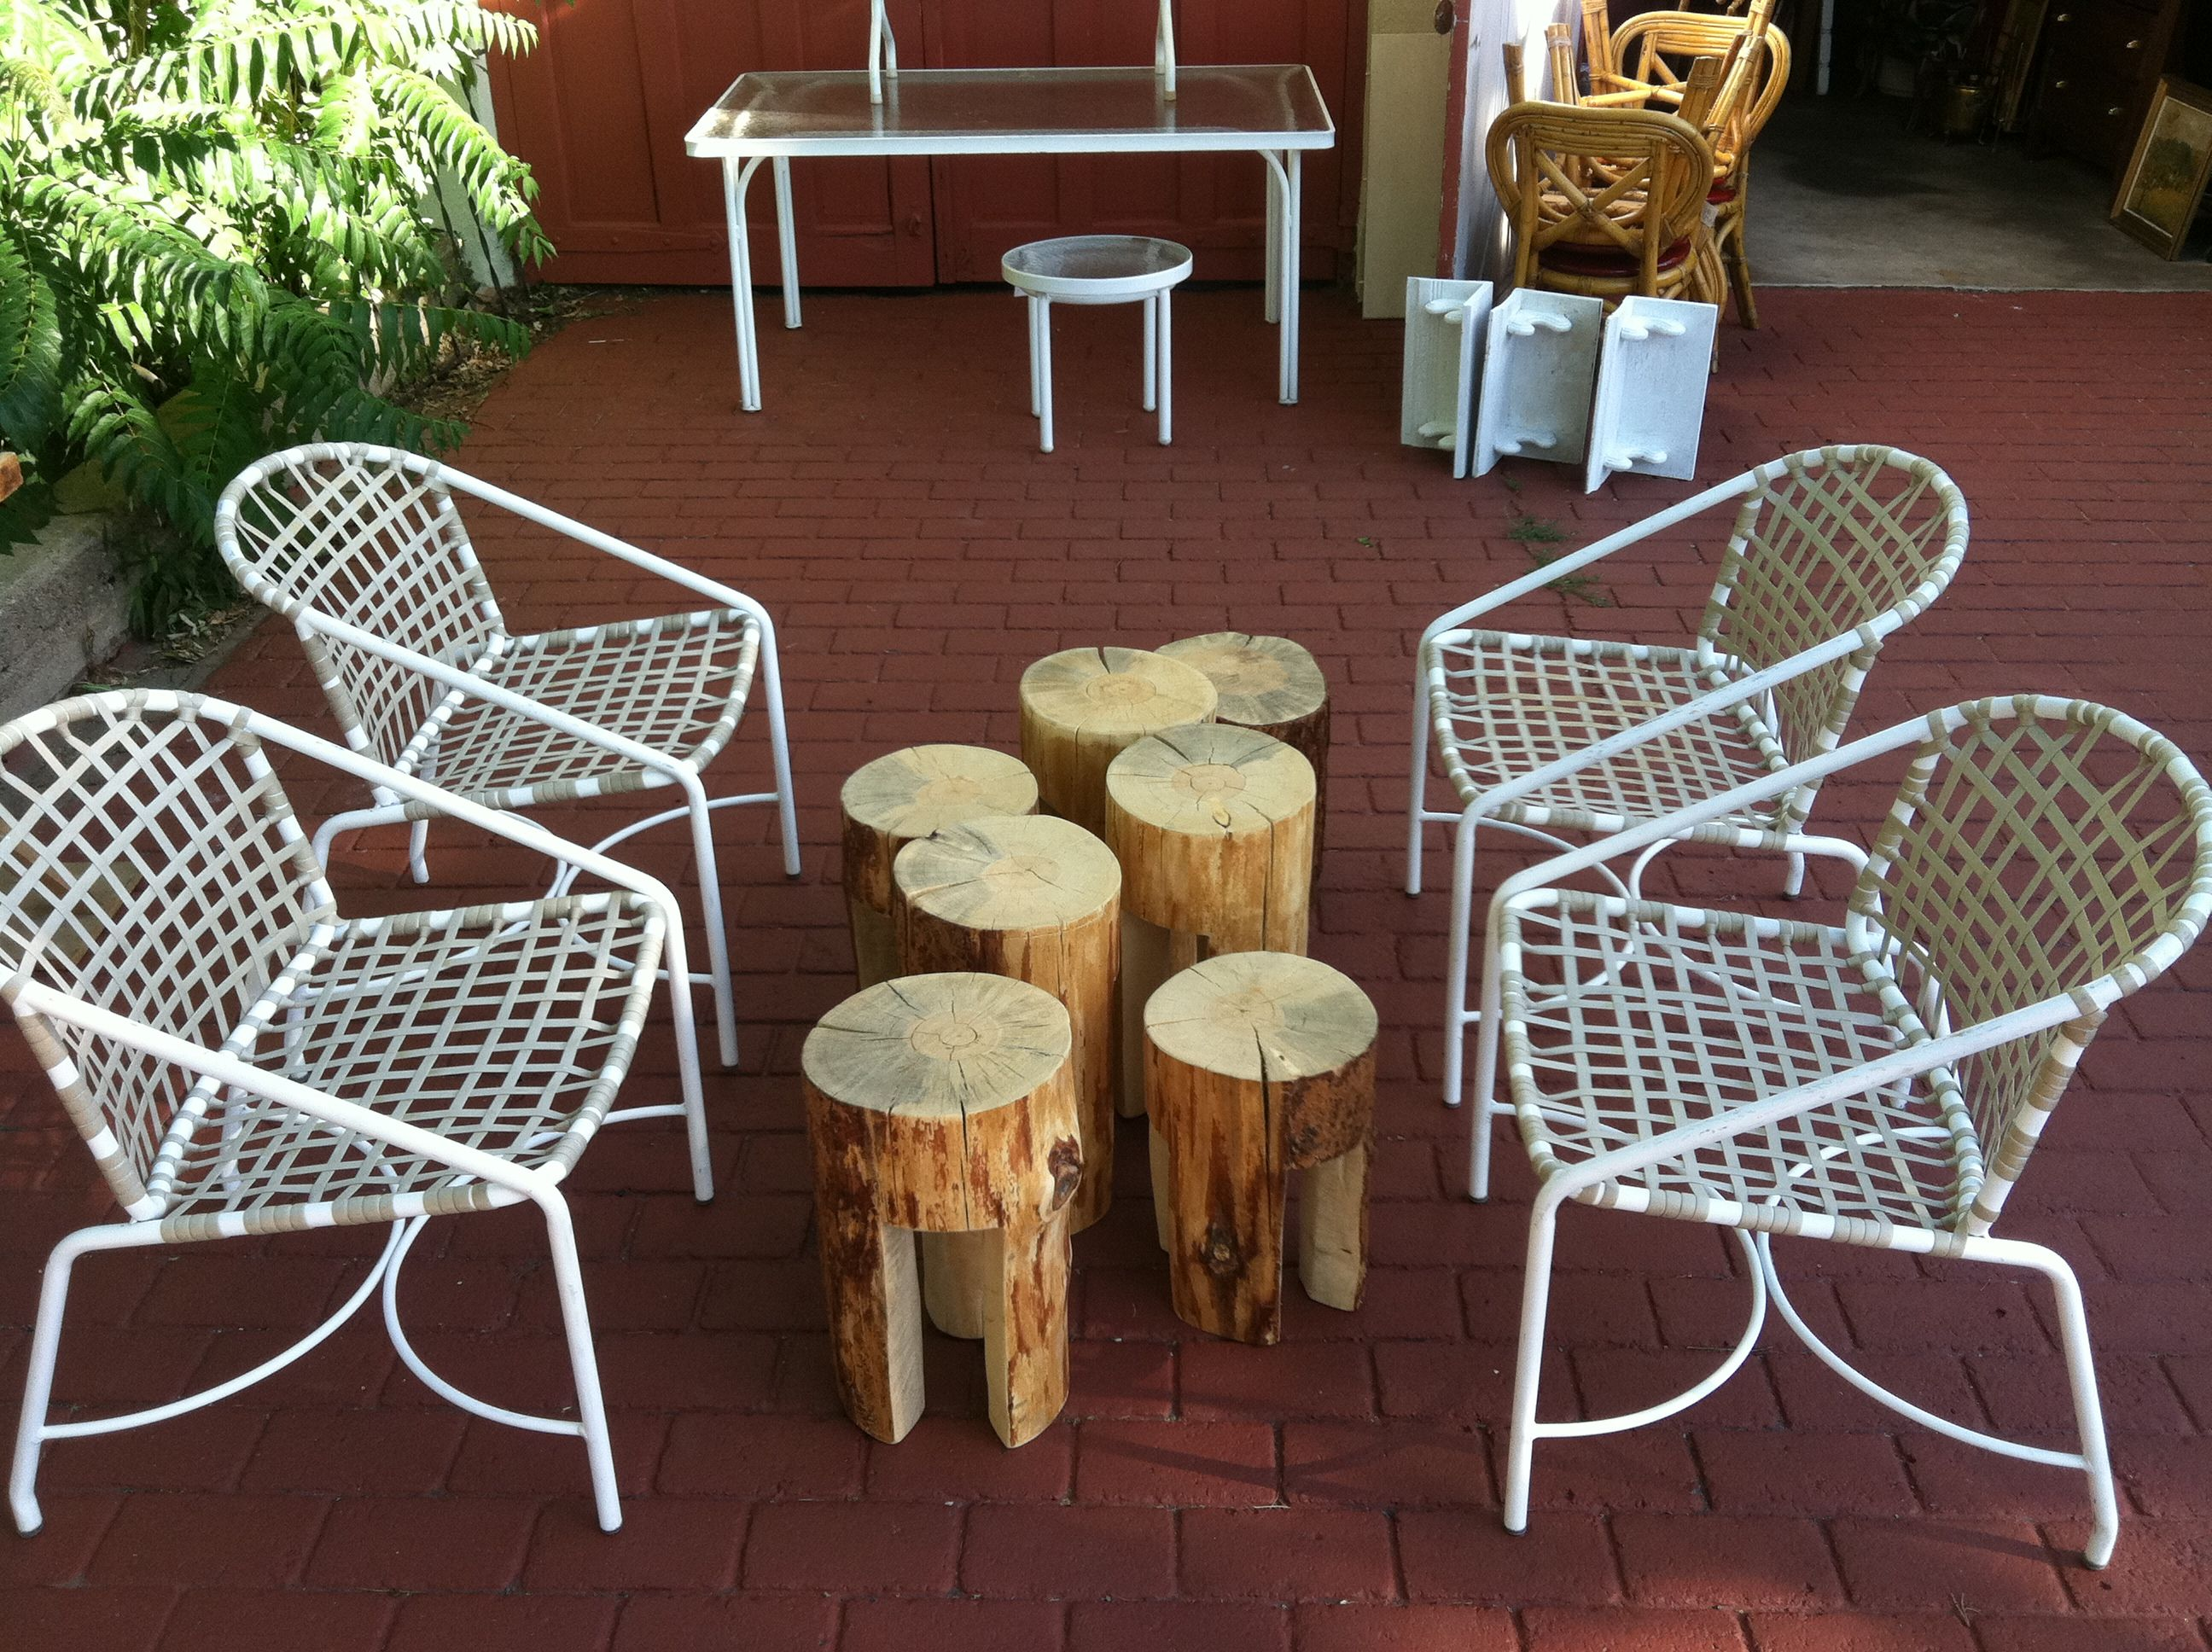 Stump Stools And Vintage Brown Jordan Chairs Habitat